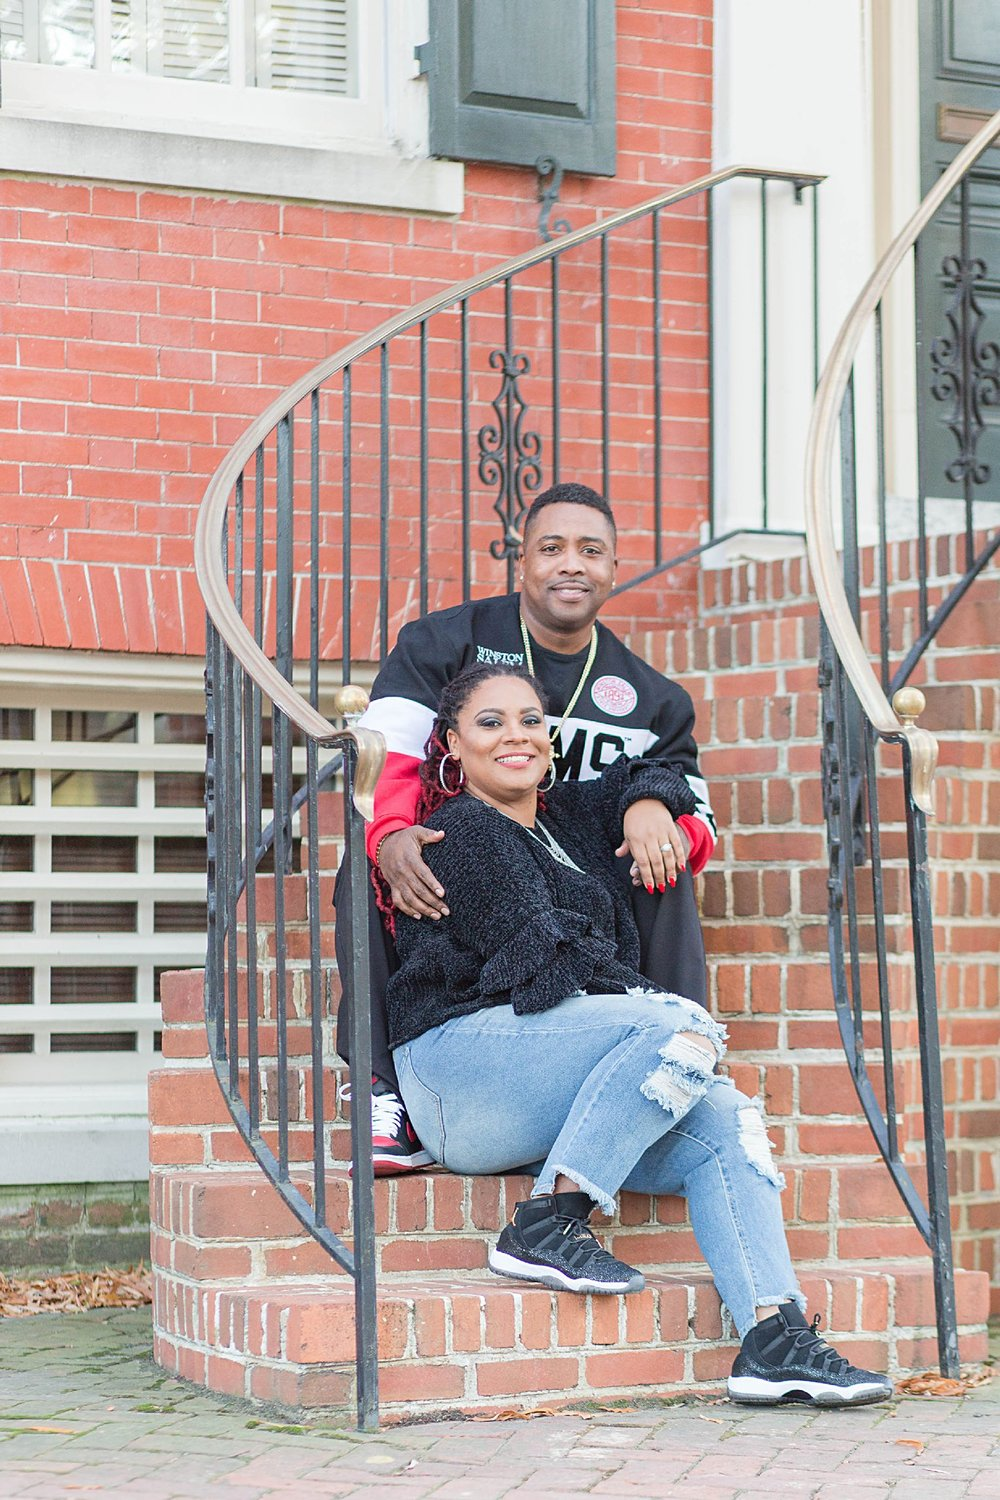 downtown_portsmouth_engagement_session_0488.jpg